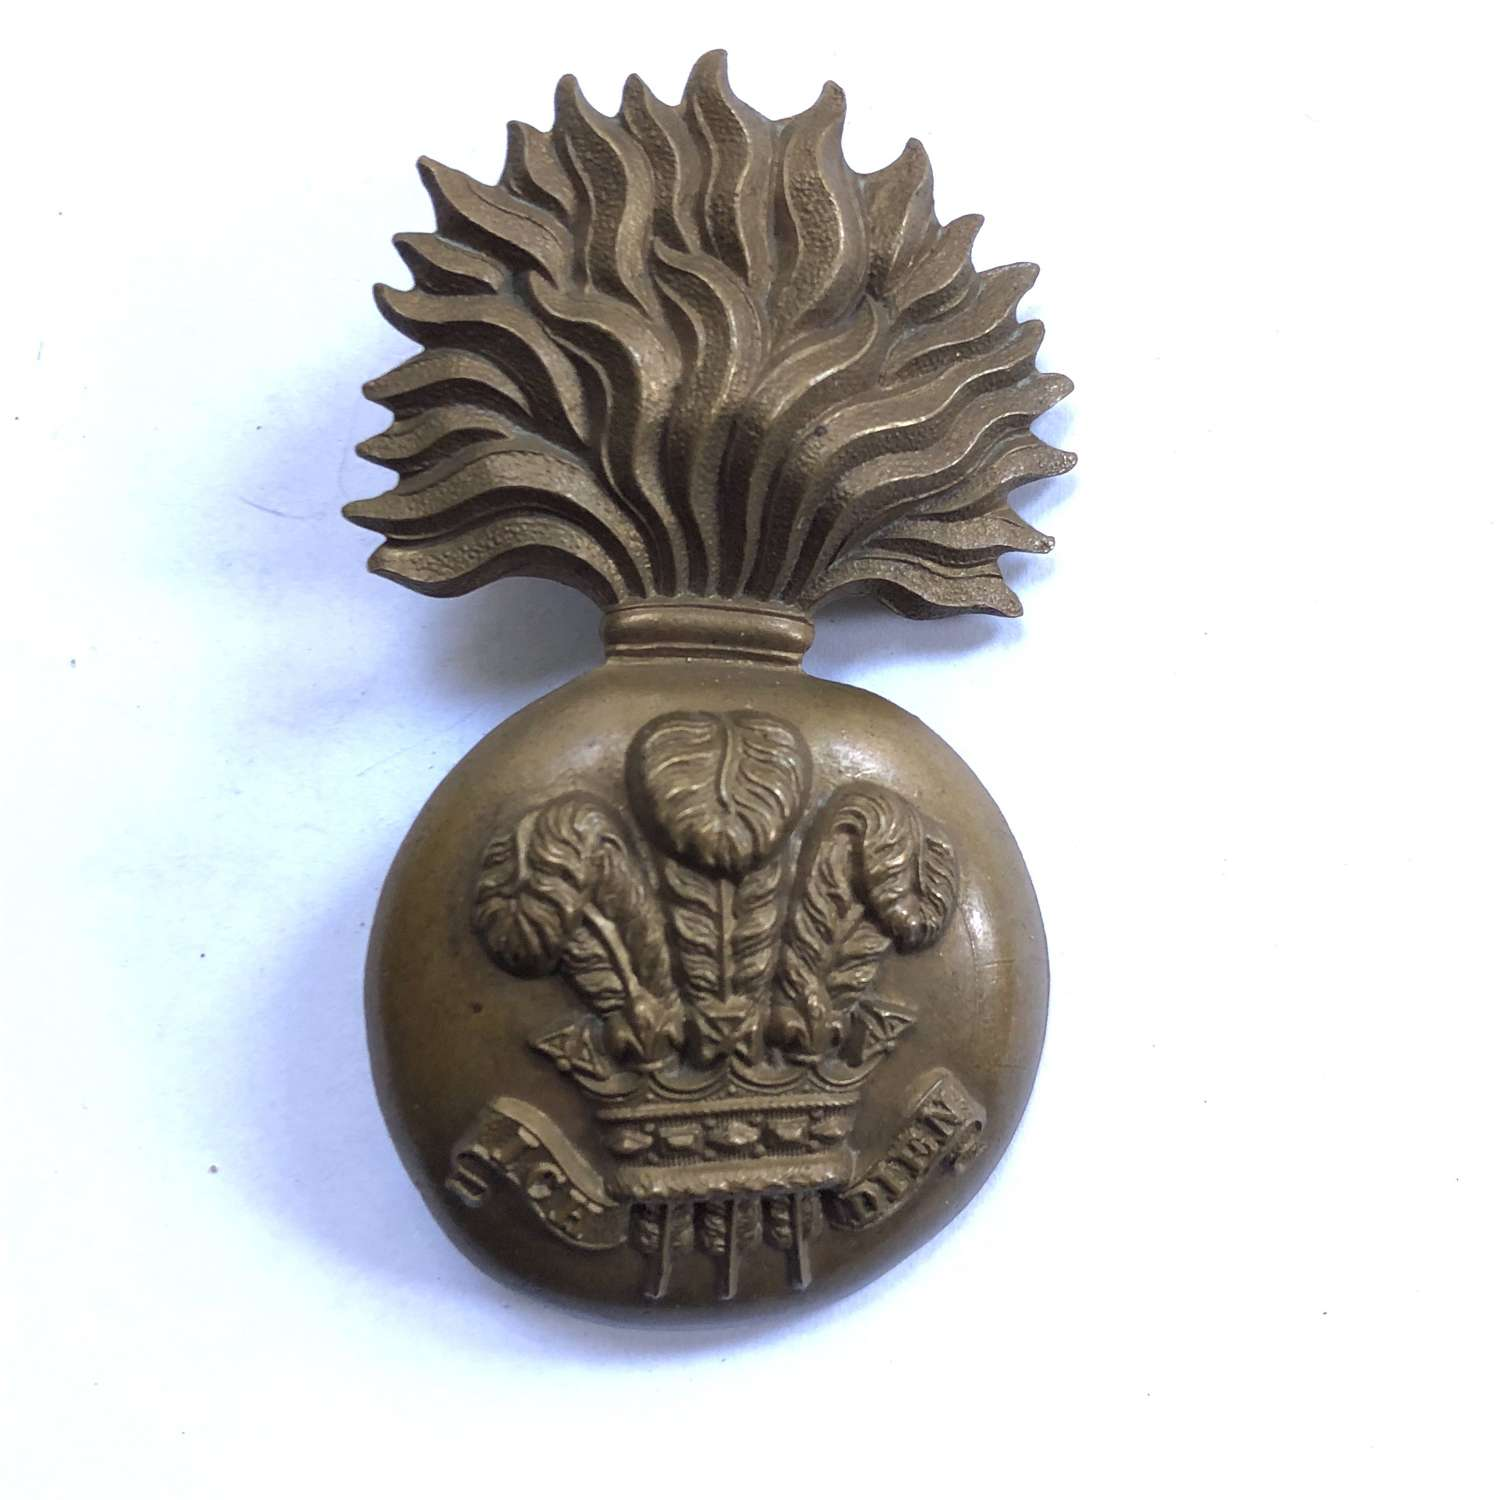 Royal Welsh Fusiliers Victorian glengarry badge circa 1881-96